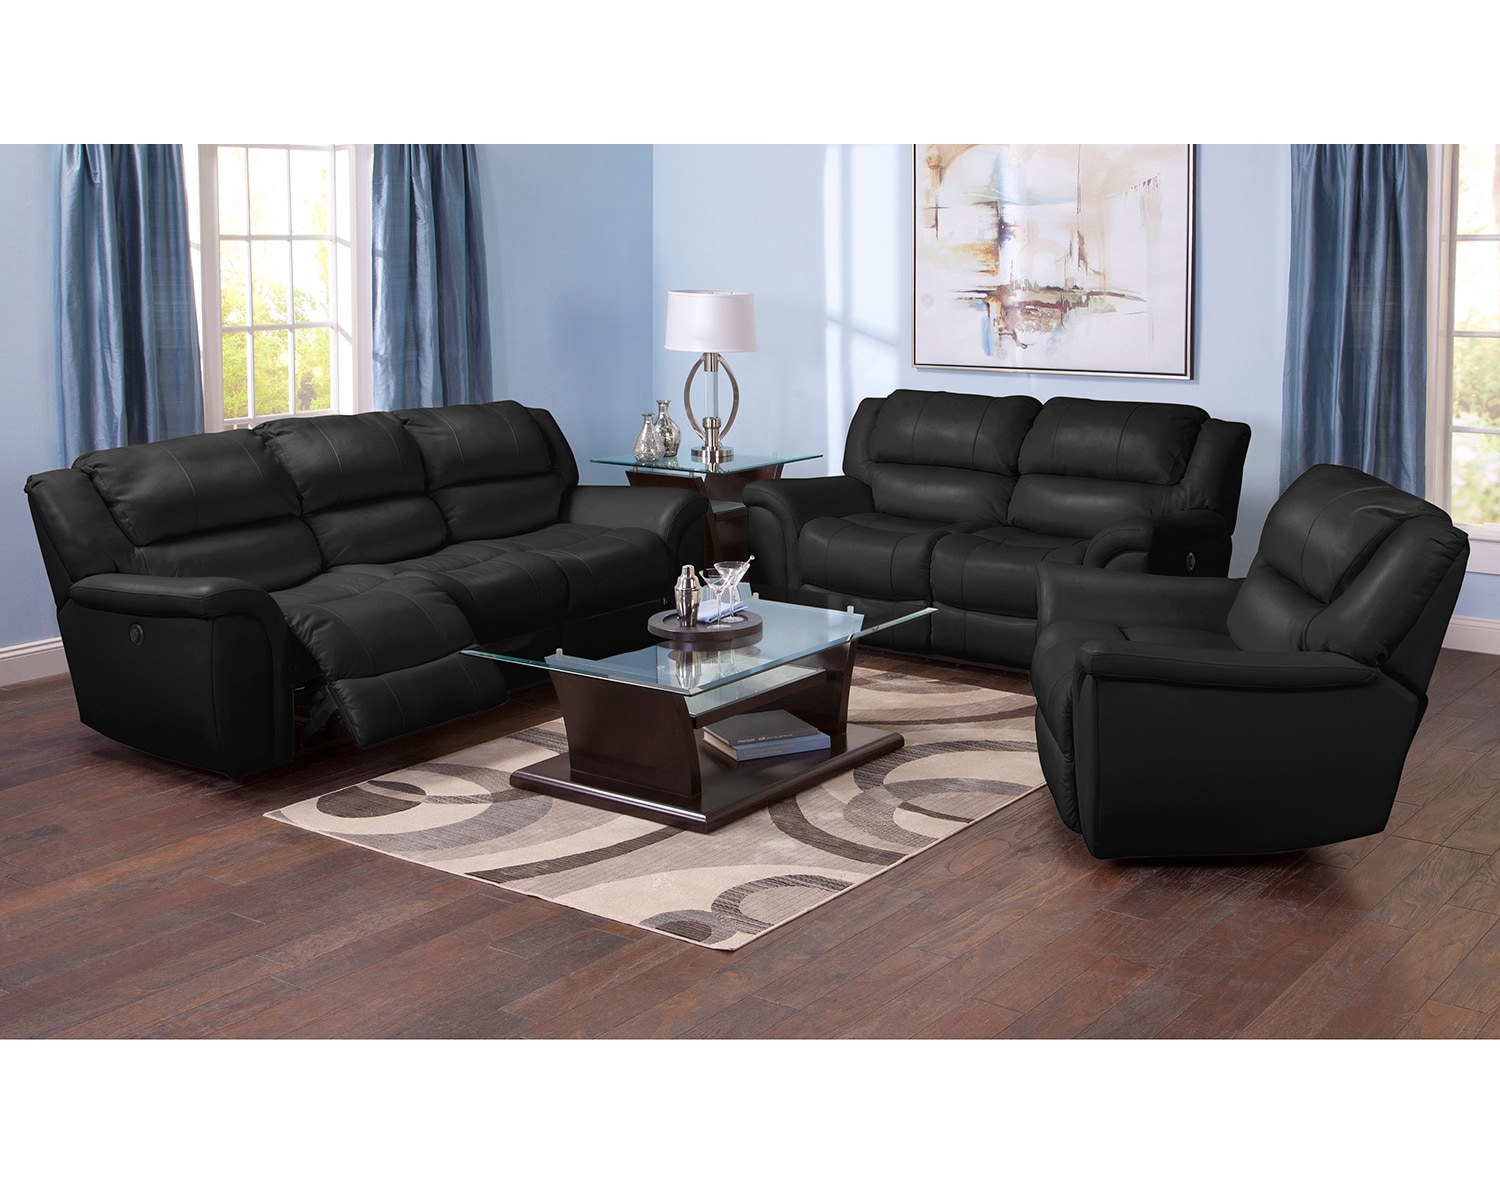 Living Room Furniture - The Brisbane Black Collection - Power Reclining Sofa